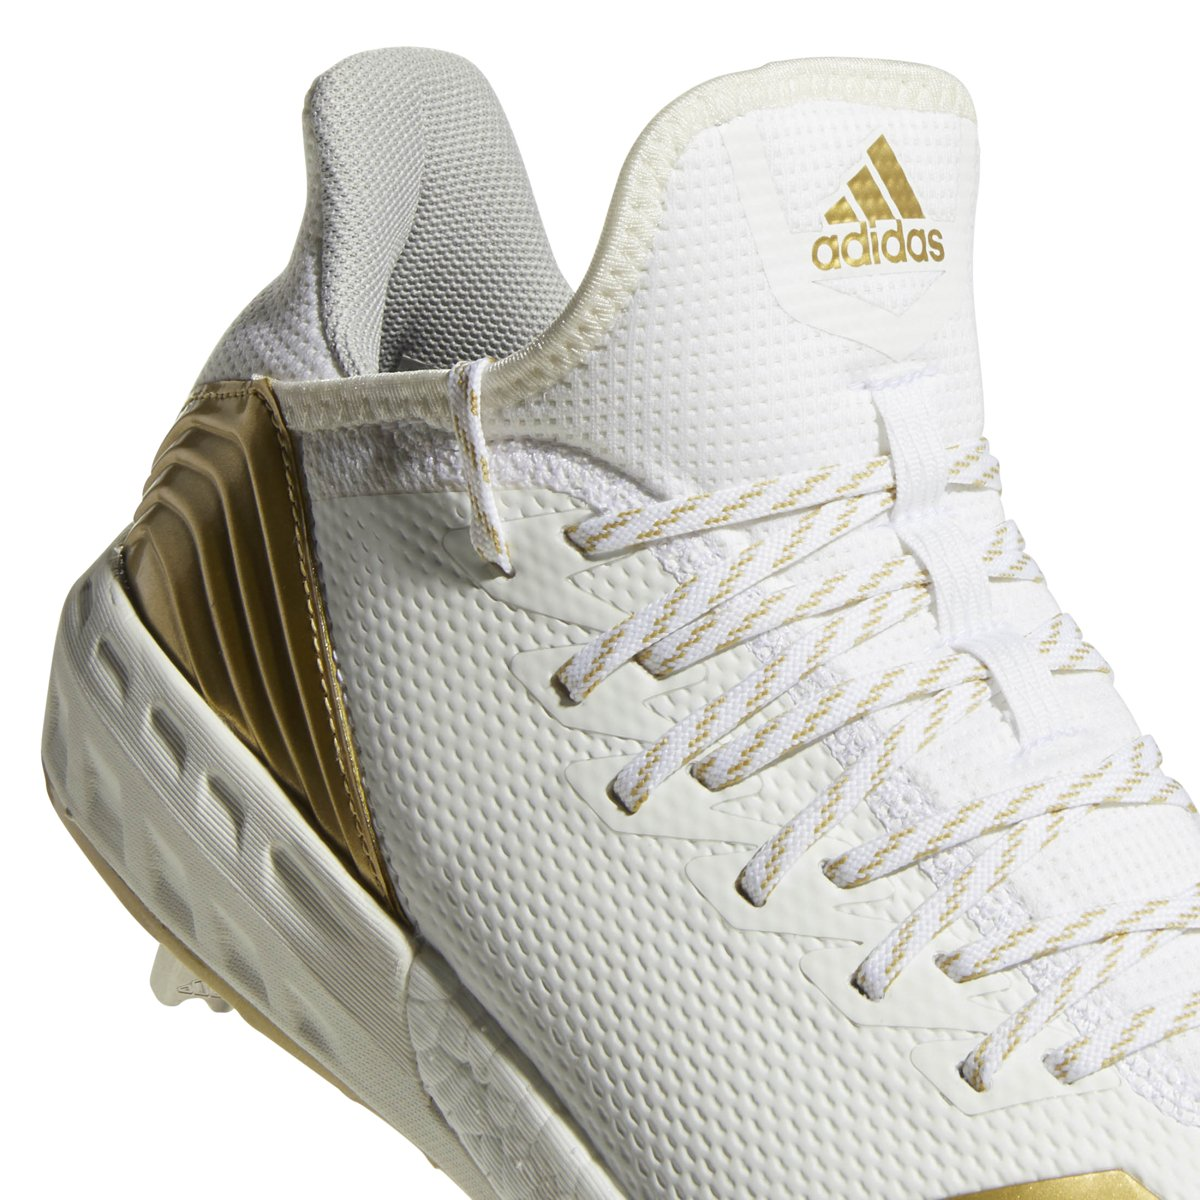 adidas Icon 4 Cleat - Men's Baseball 11 White/Gold Metallic by adidas (Image #4)